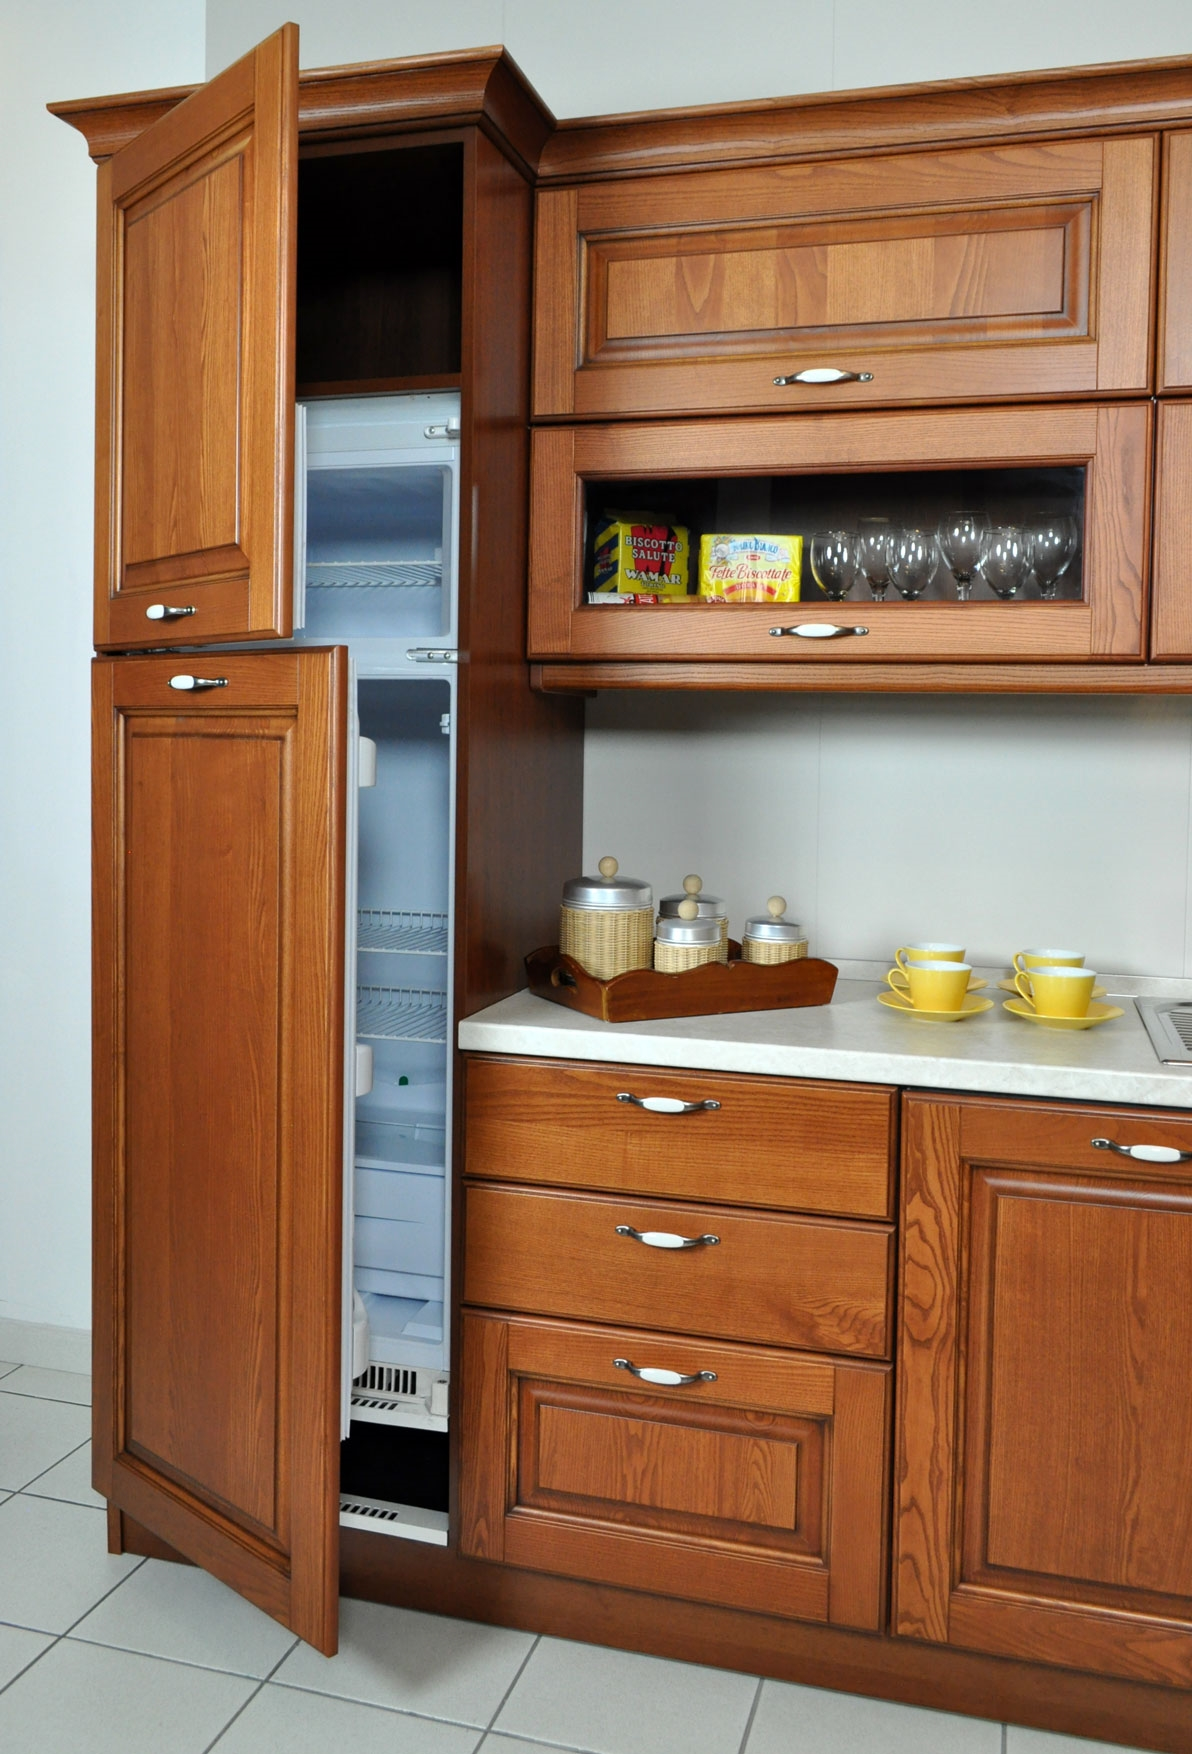 Cucina Con Elettrodomestici E Camera Da Letto Pictures To Pin On  #804321 1192 1754 Veneta Cucine O Copat